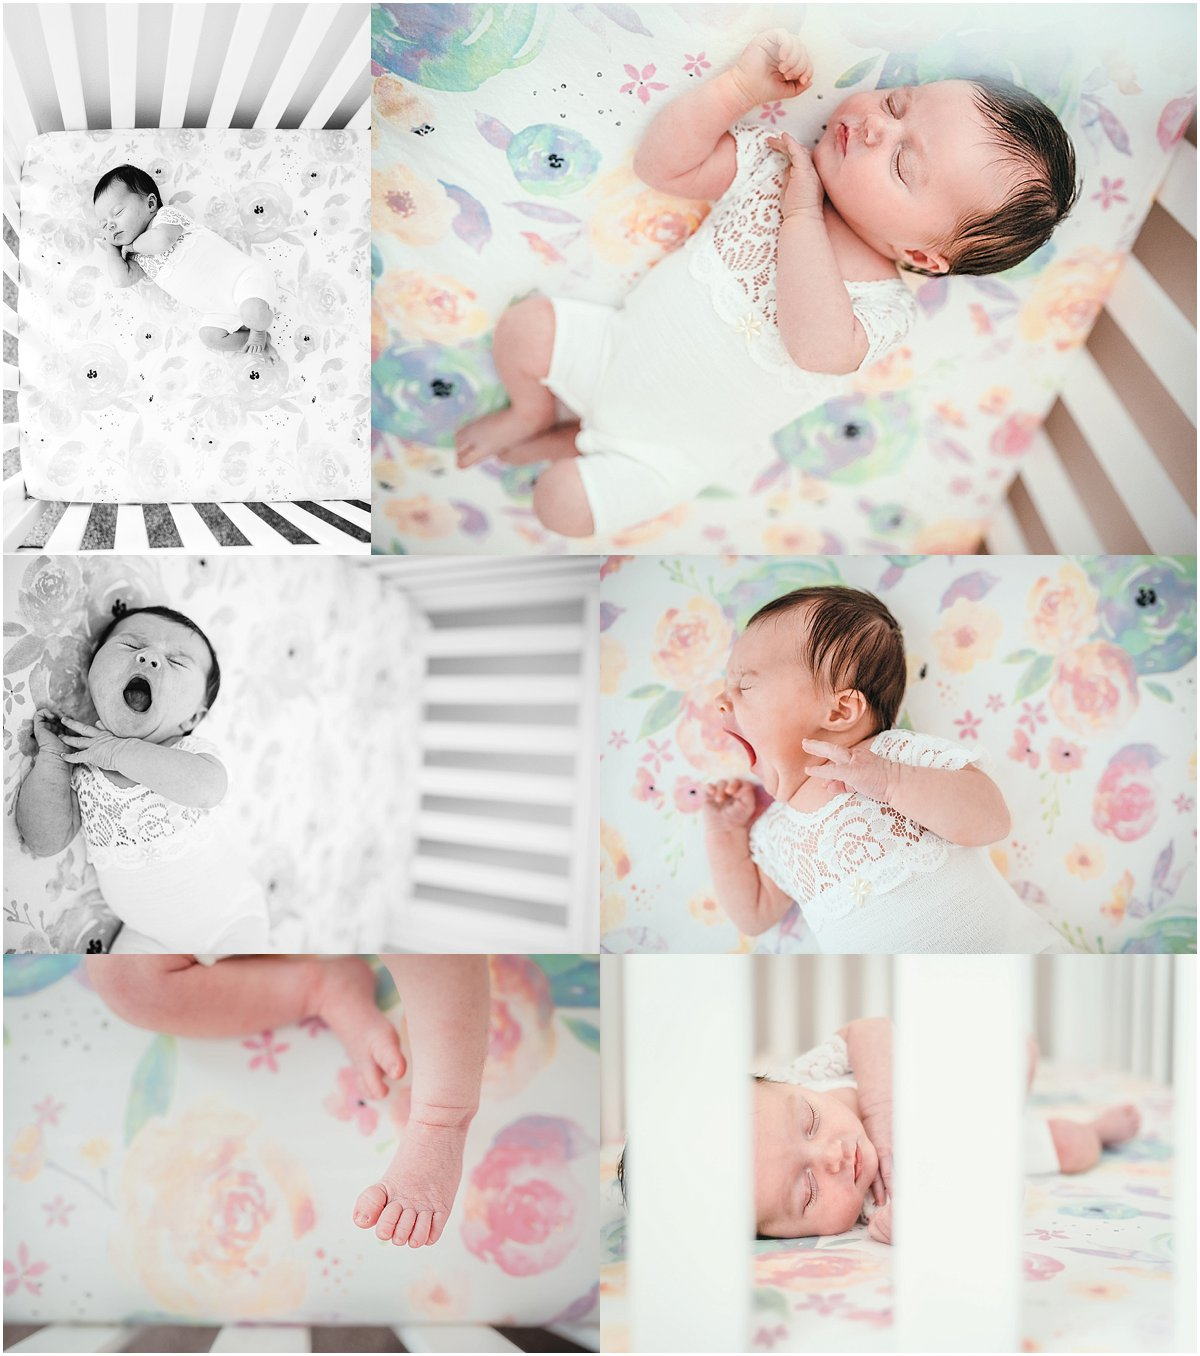 Ashley_Rogers_Photography_Orlando_Non-Posed_Newborn_Family_Lifestyle_Photographer_0883.jpg